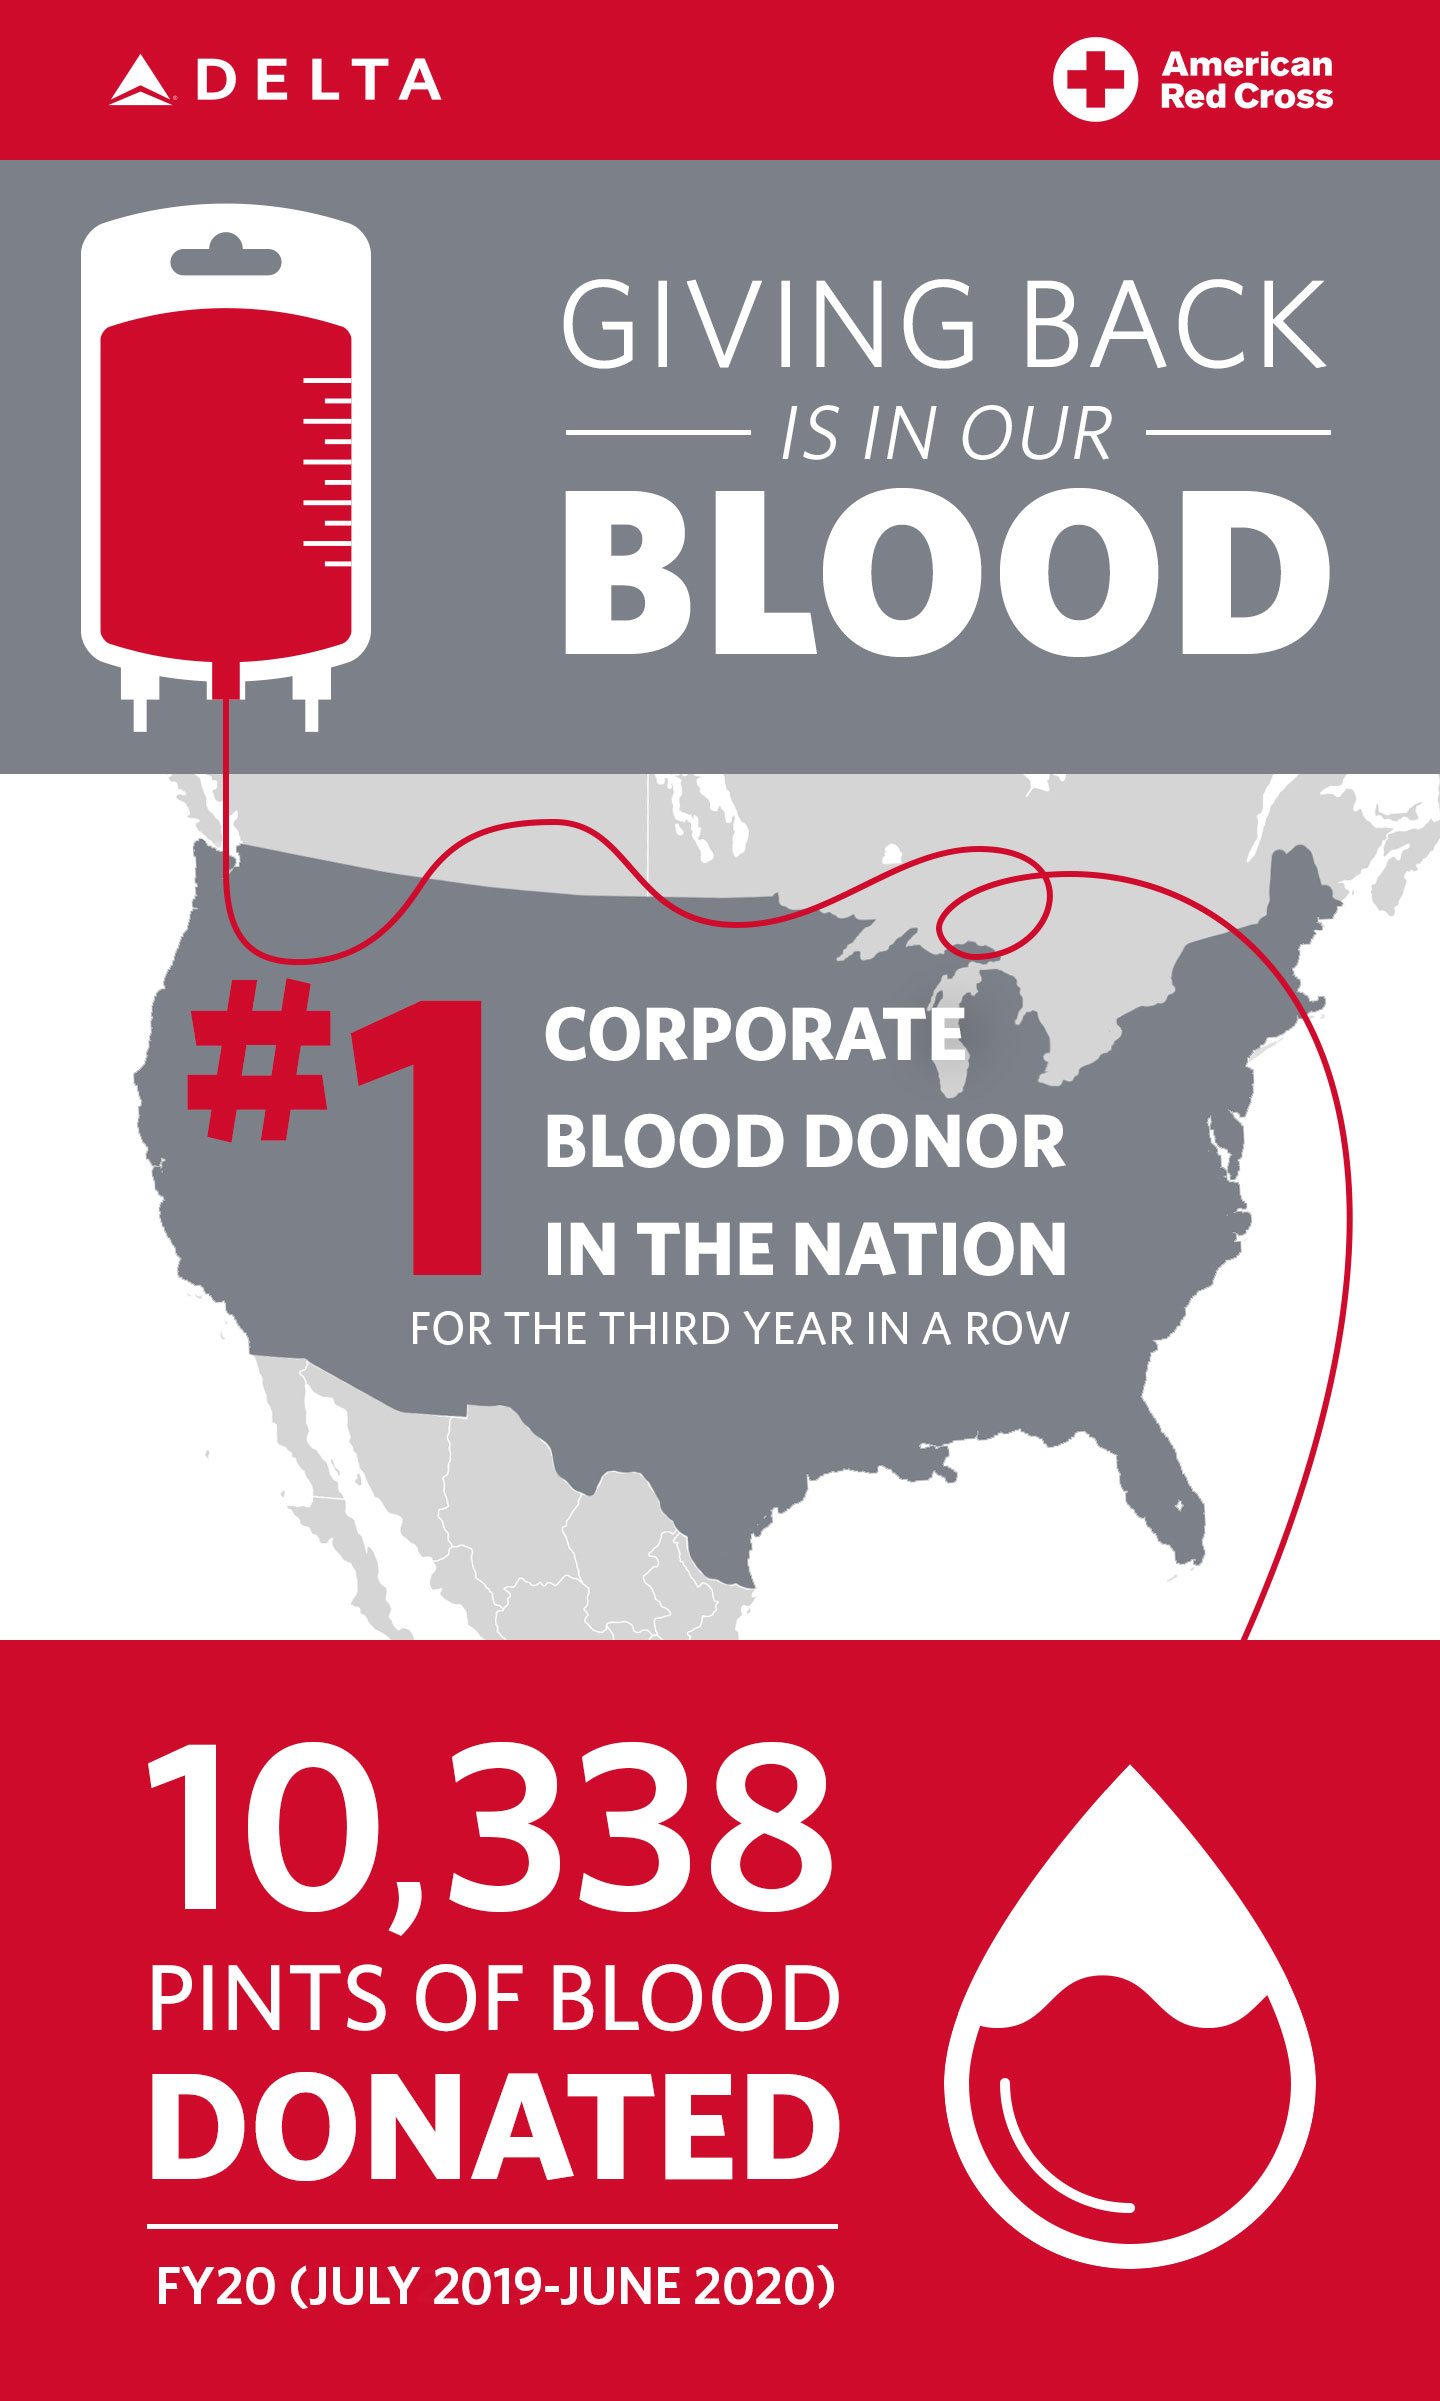 Delta is #1 American Red Cross corporate blood donor